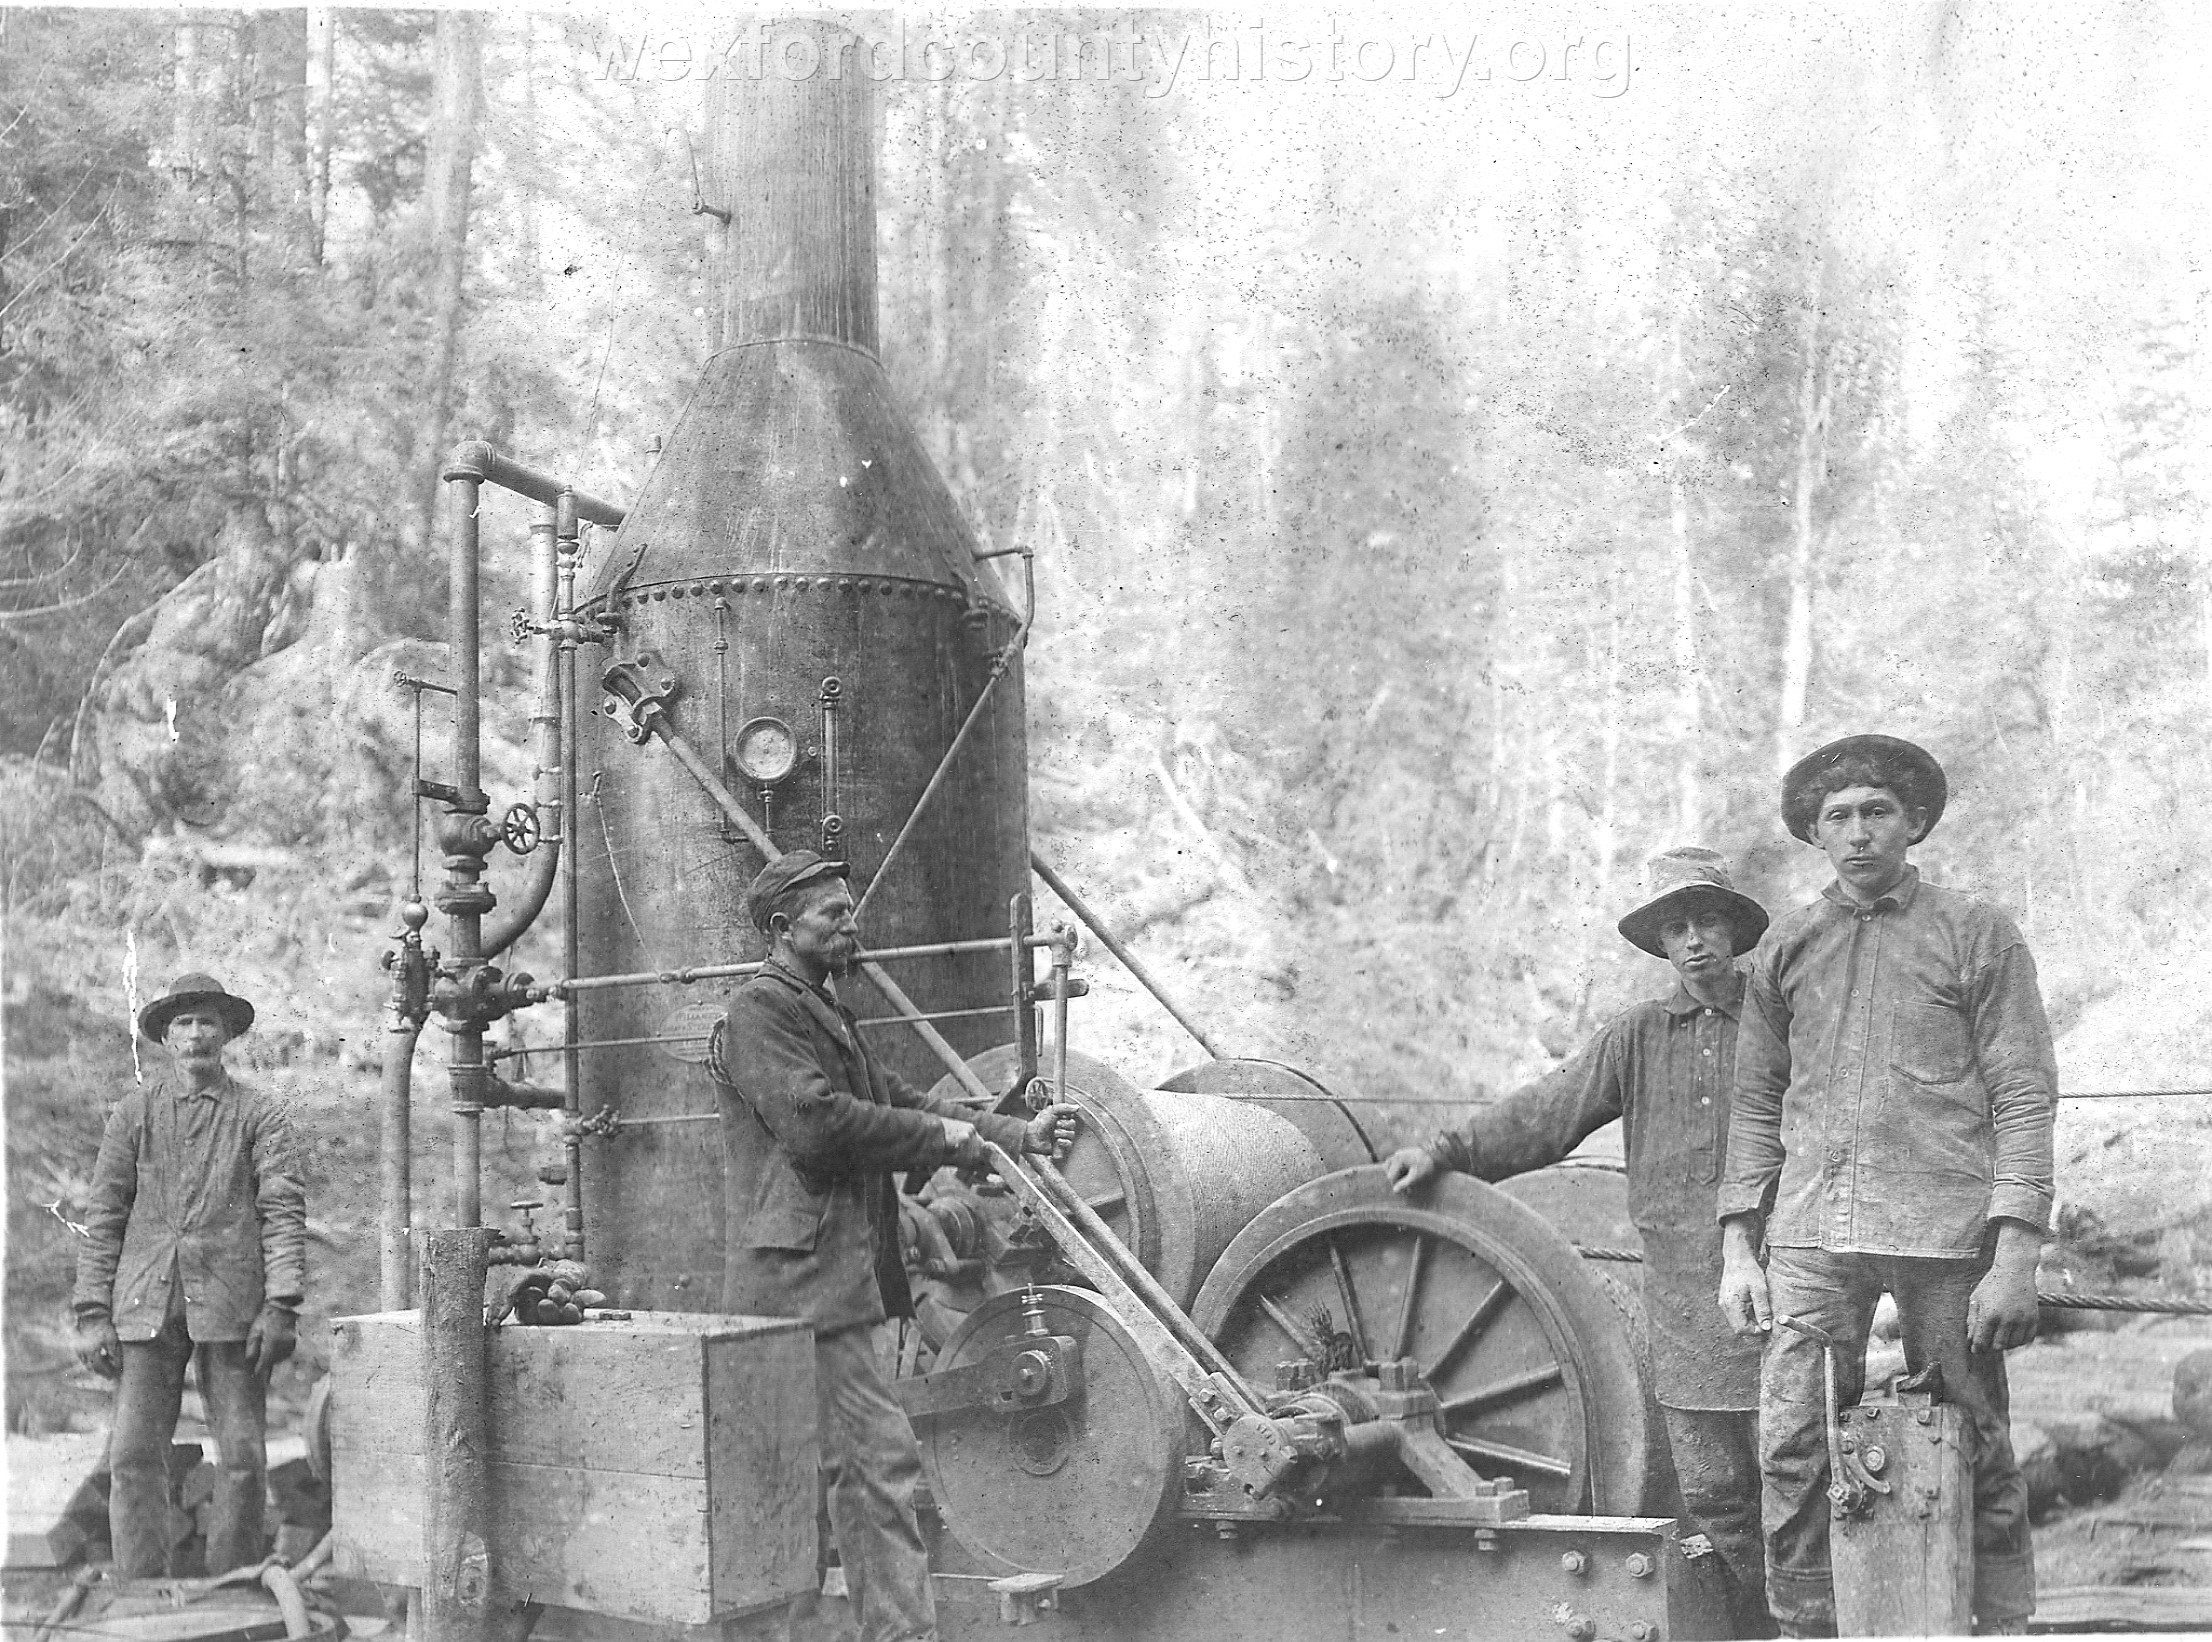 Wexford-County-Lumber-Timber-Harvest-Circa-1890s-15